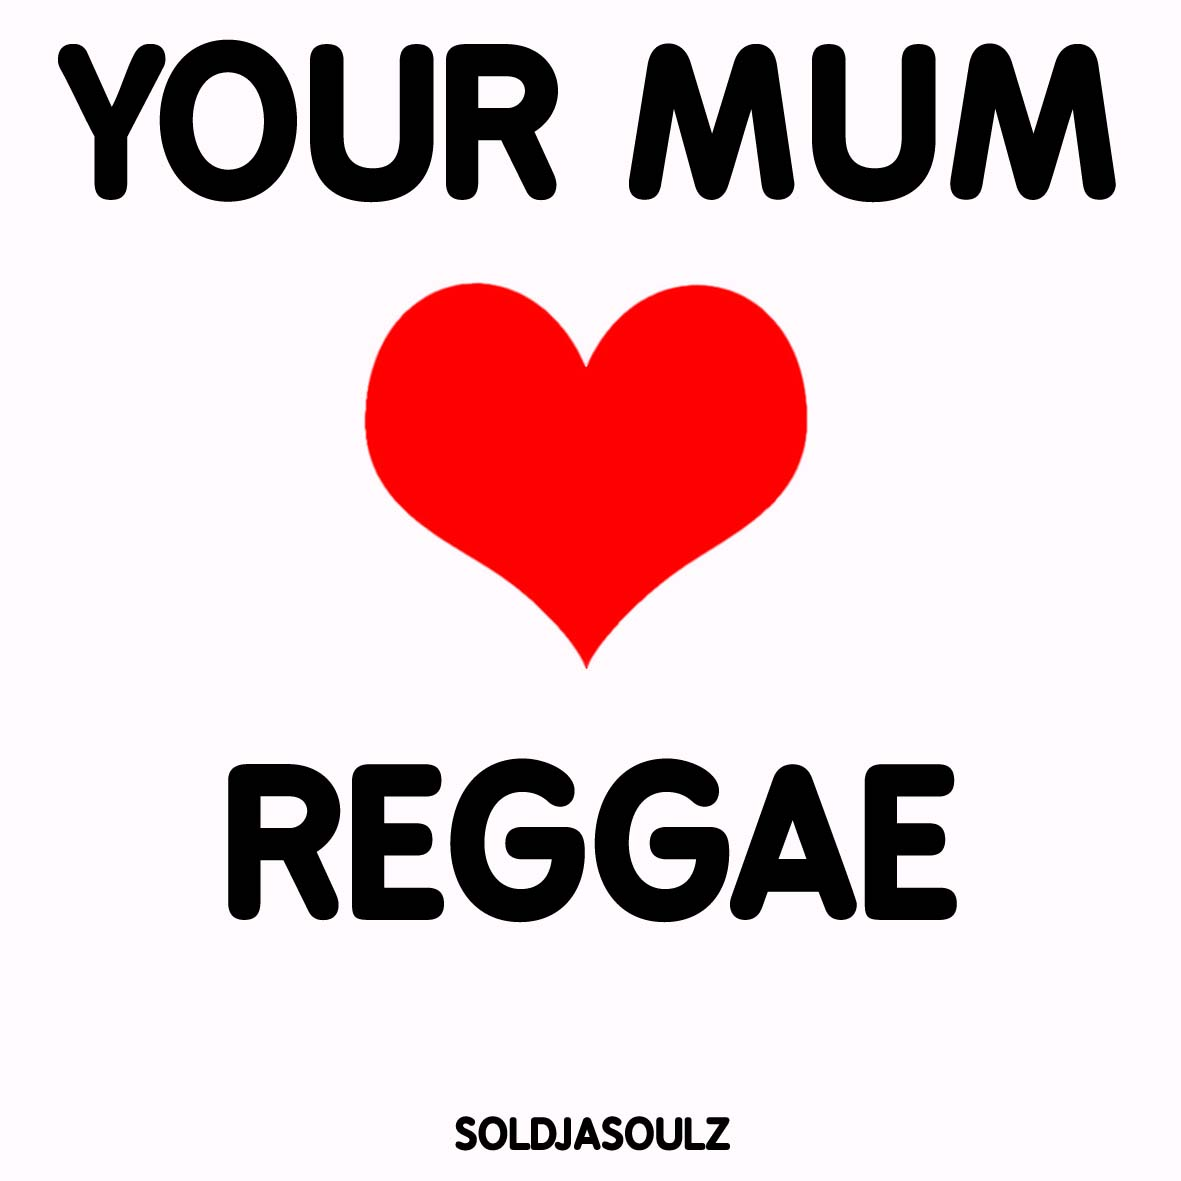 Your Mum Loves Reggae                                                                         DPF Just sent over this link containing some Free Rap-over-Reggae summer vibes courtesy of Soldjasoulz.   Check it:    http://soundcloud.com/chronic-redeye-music/soldjasoulz_your-mum-loves